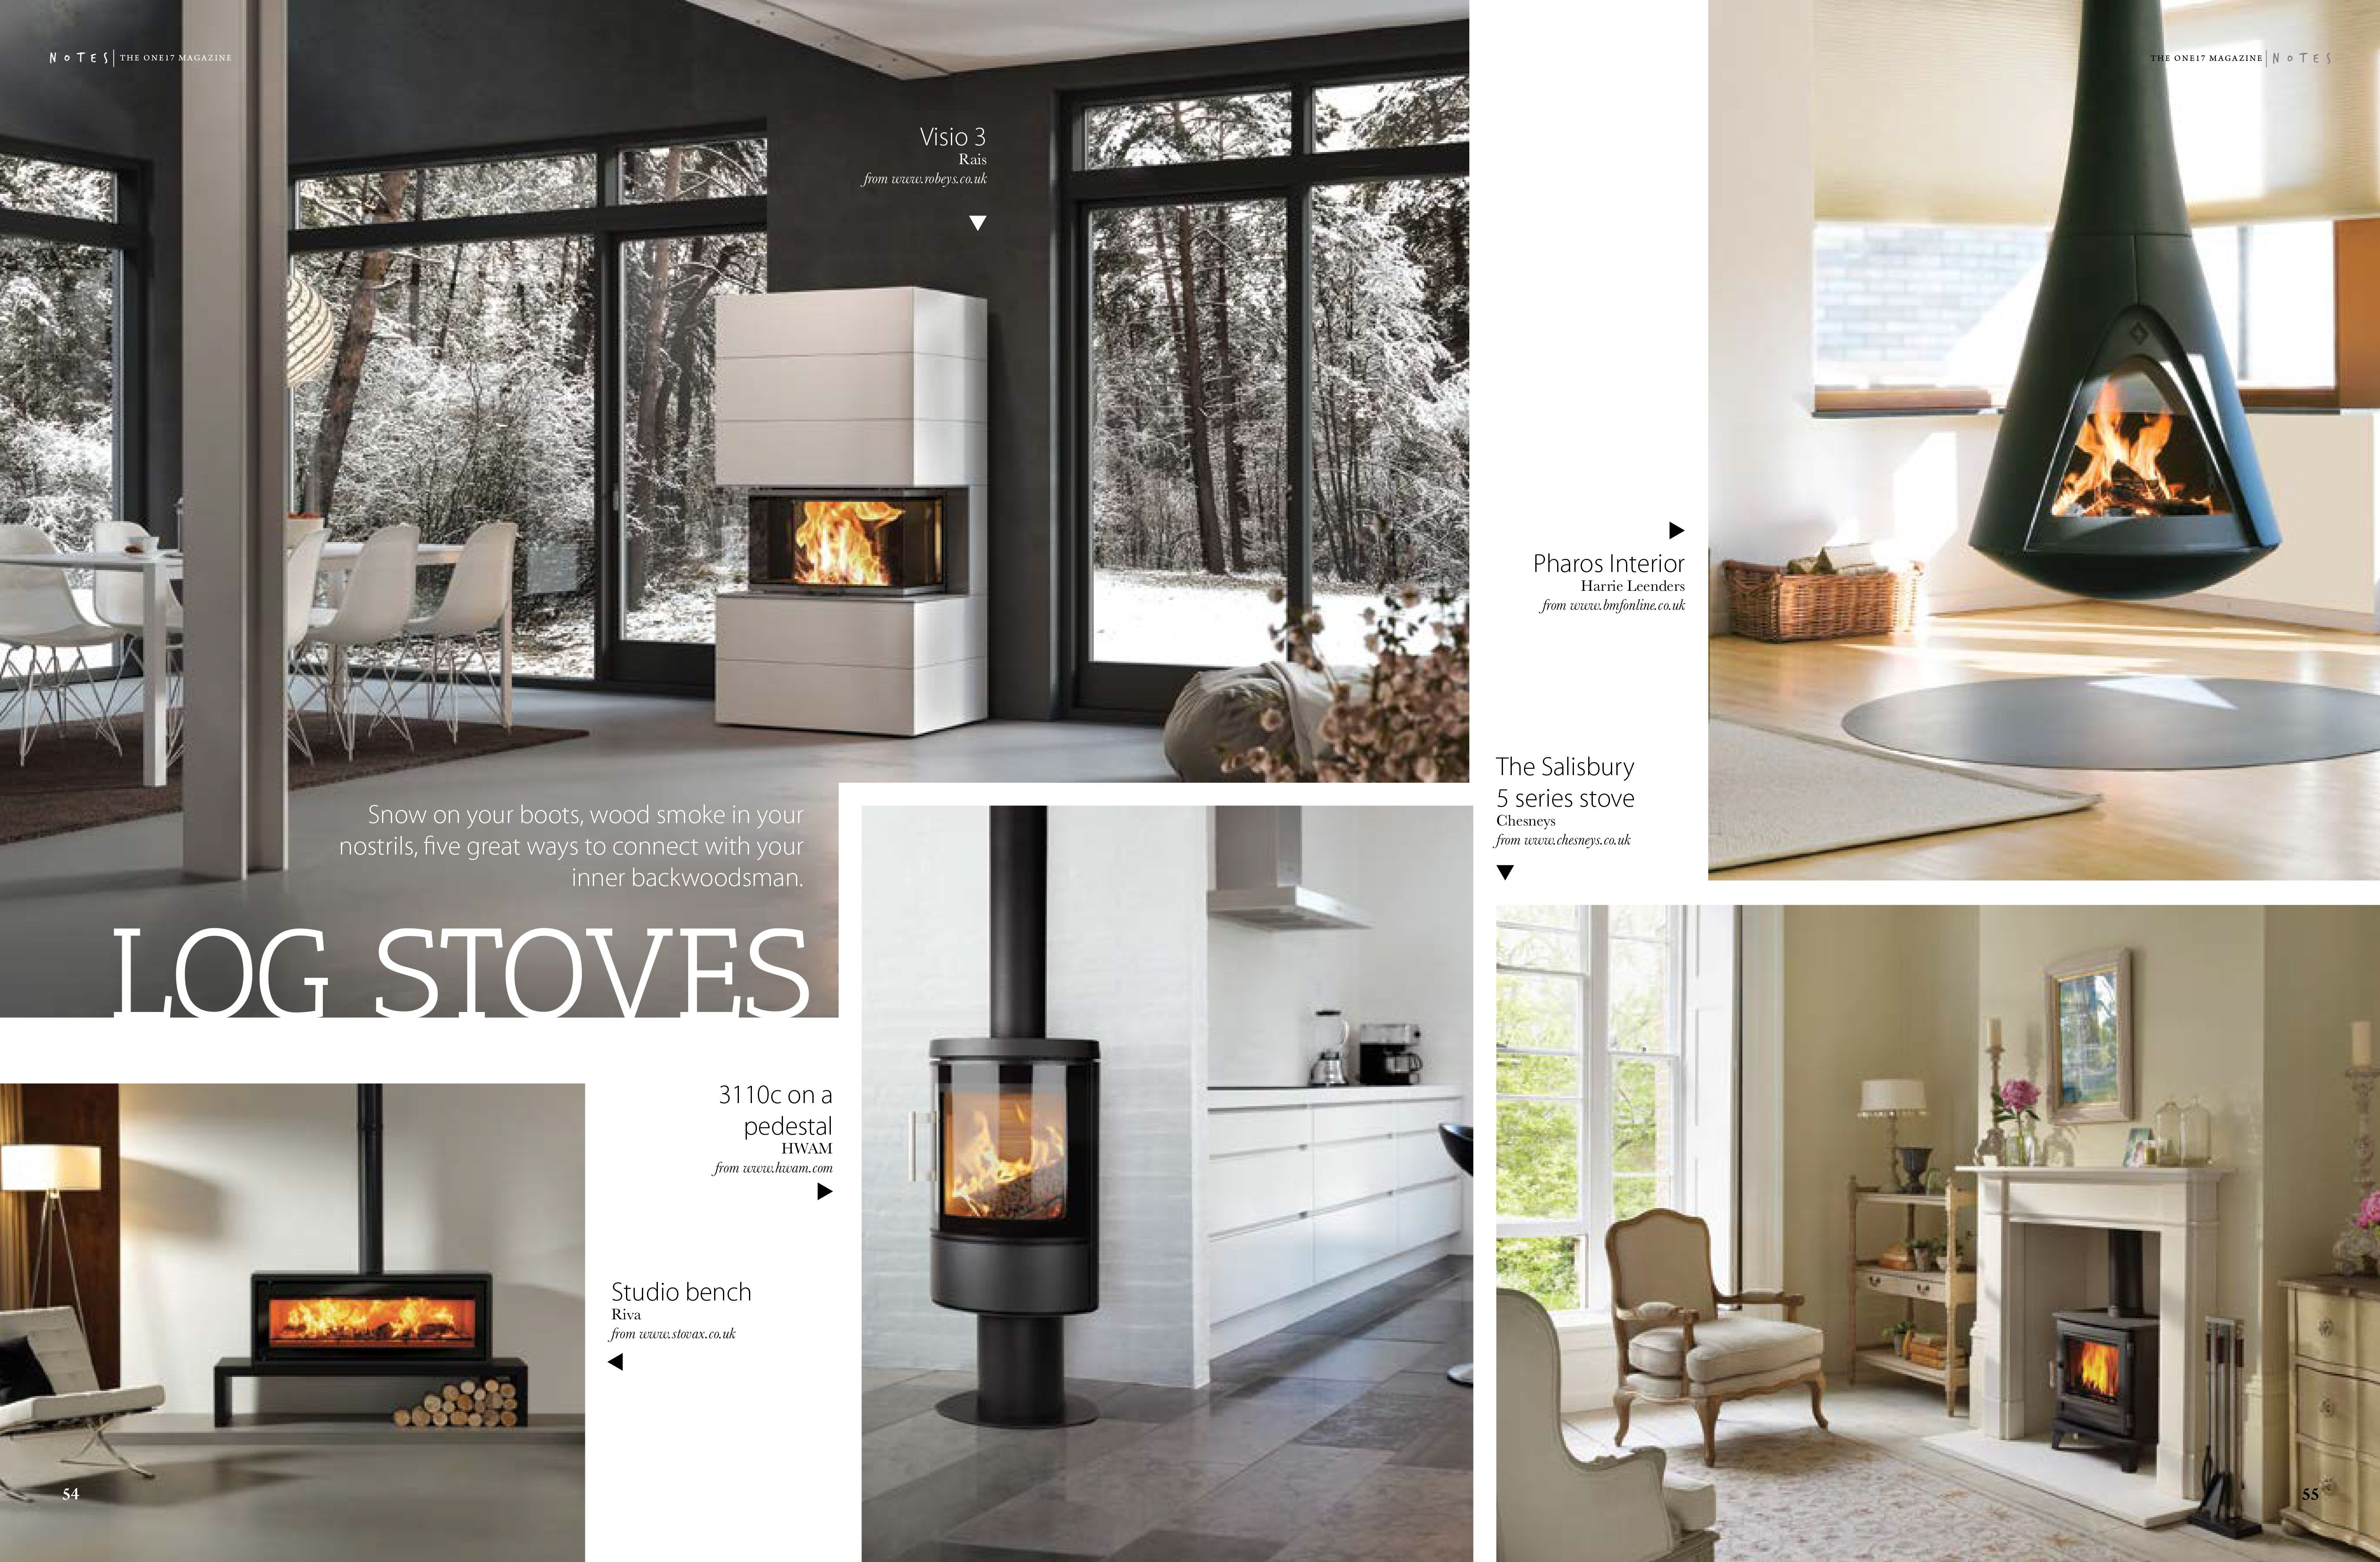 rais editorial in notes wood fires pinterest stoves cookers